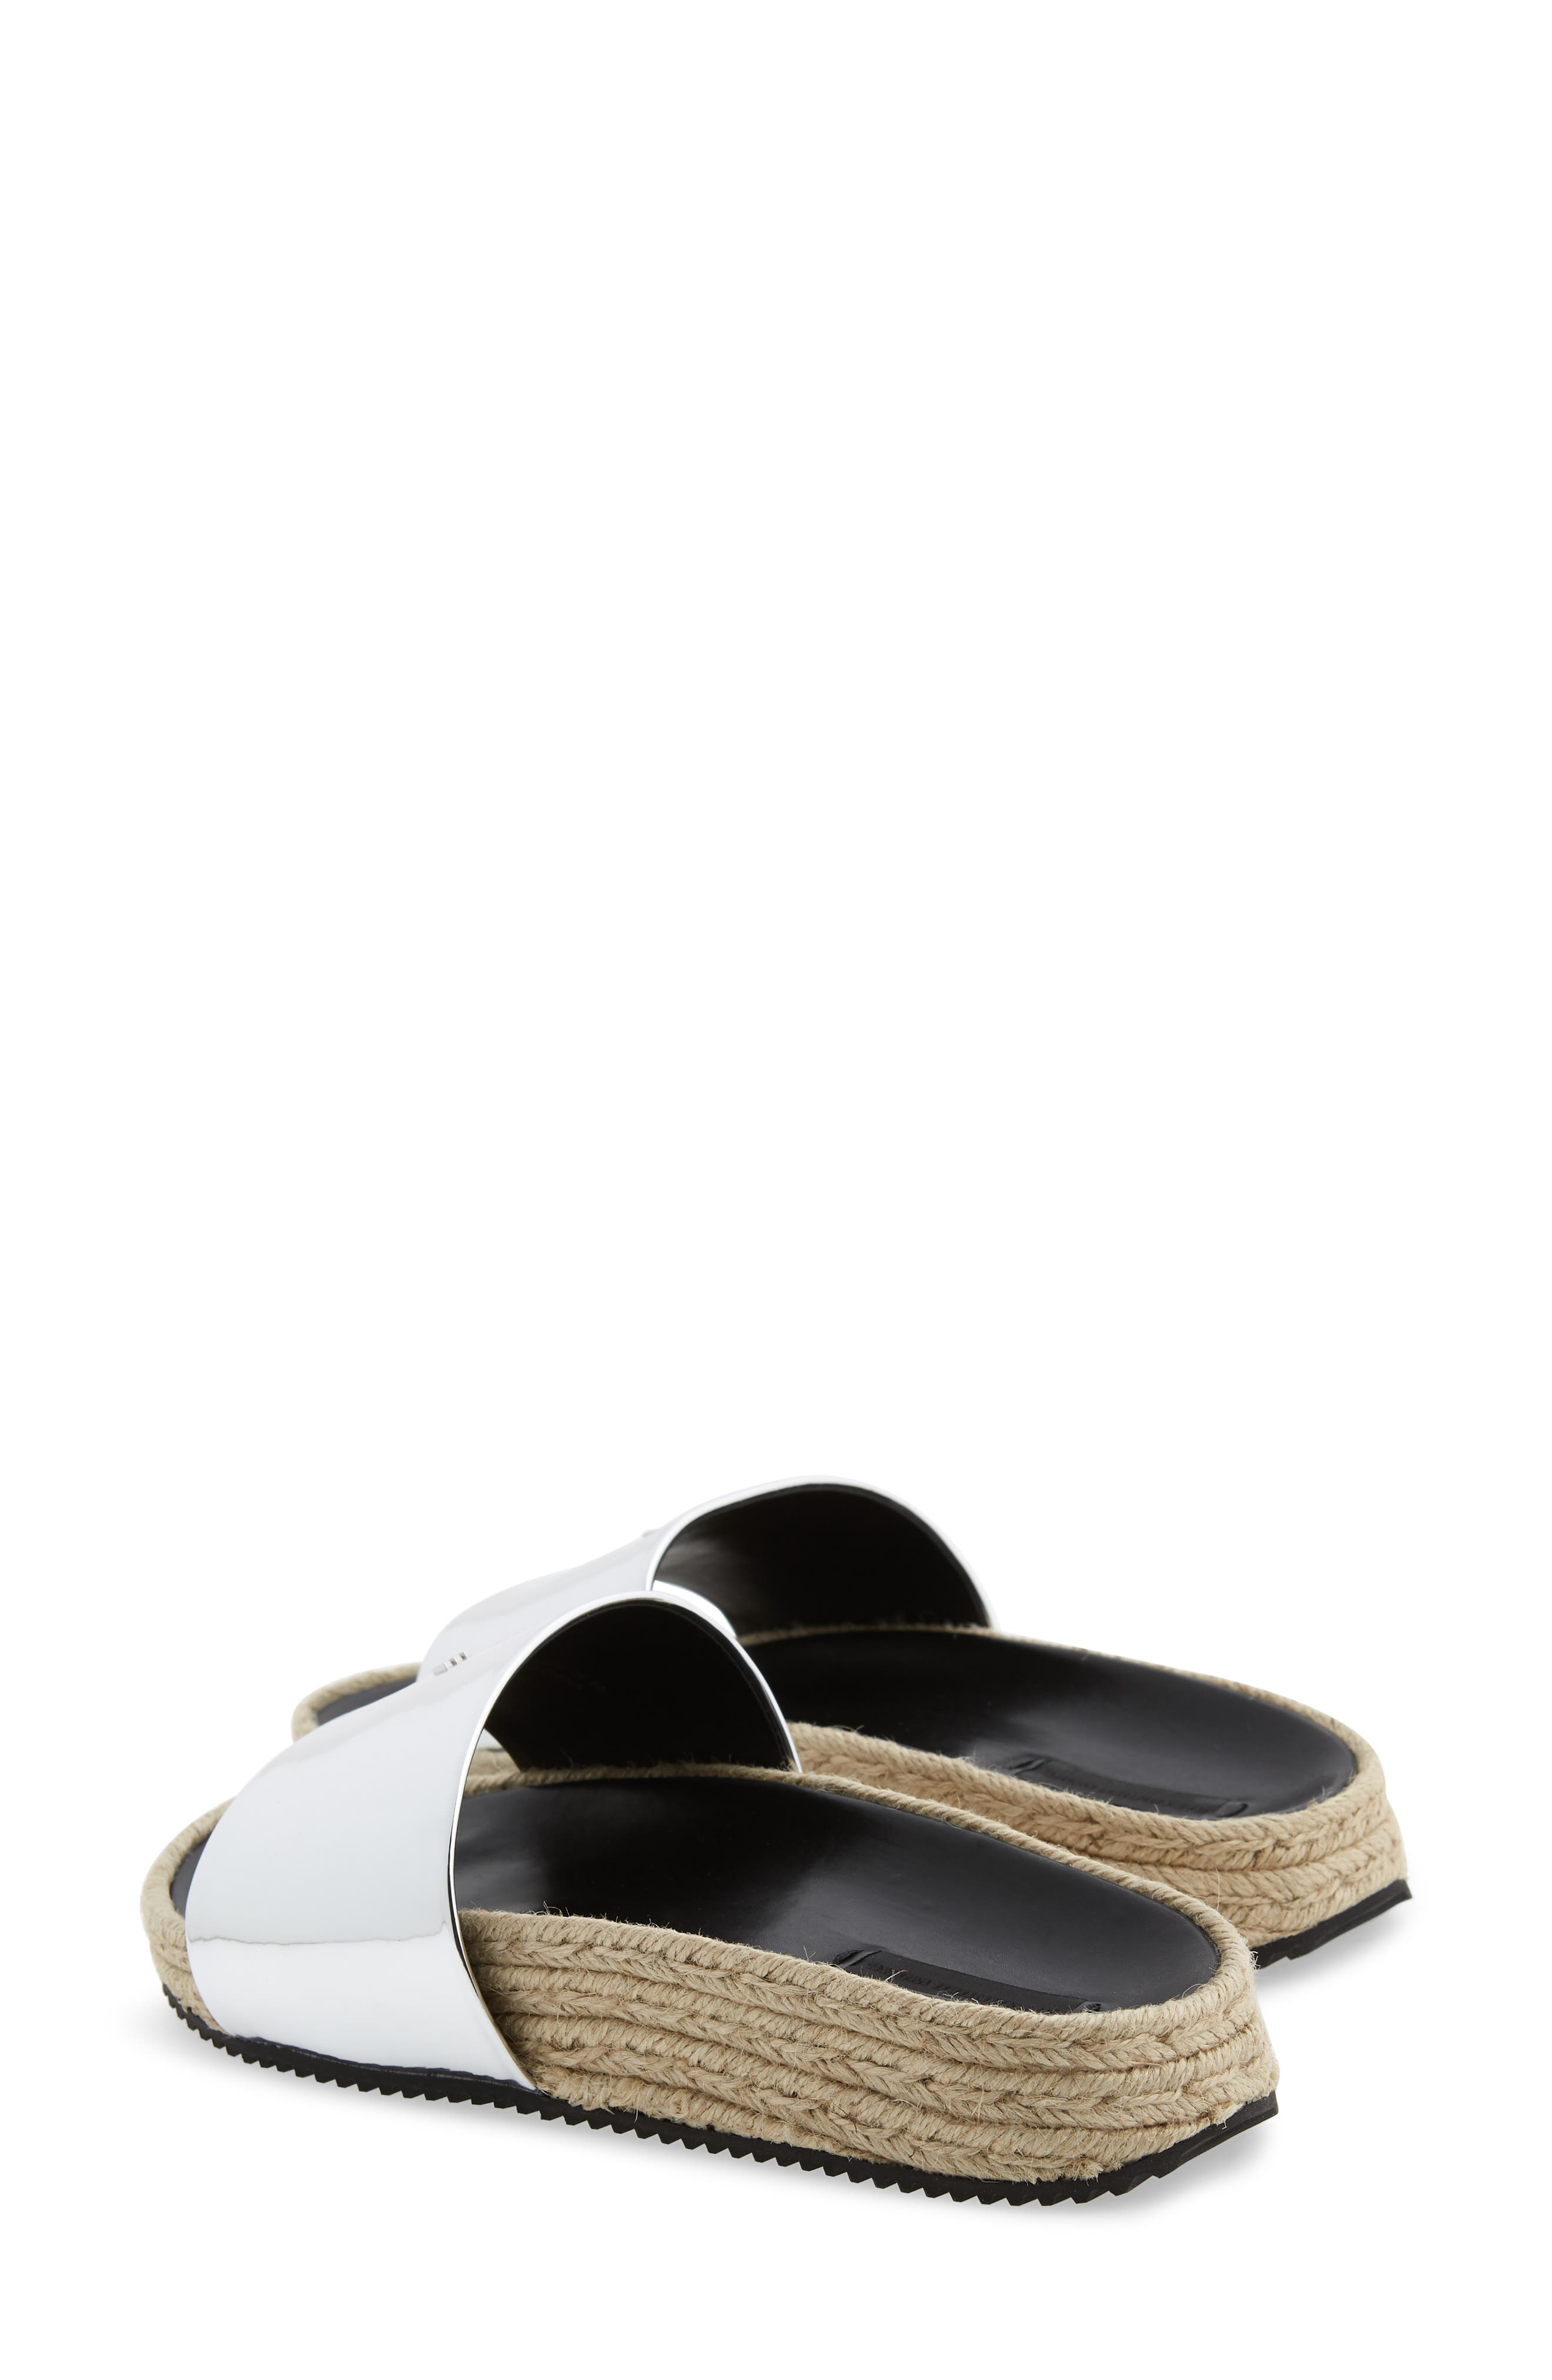 Suki Espadrille Slide Sandal,                             Alternate thumbnail 3, color,                             043